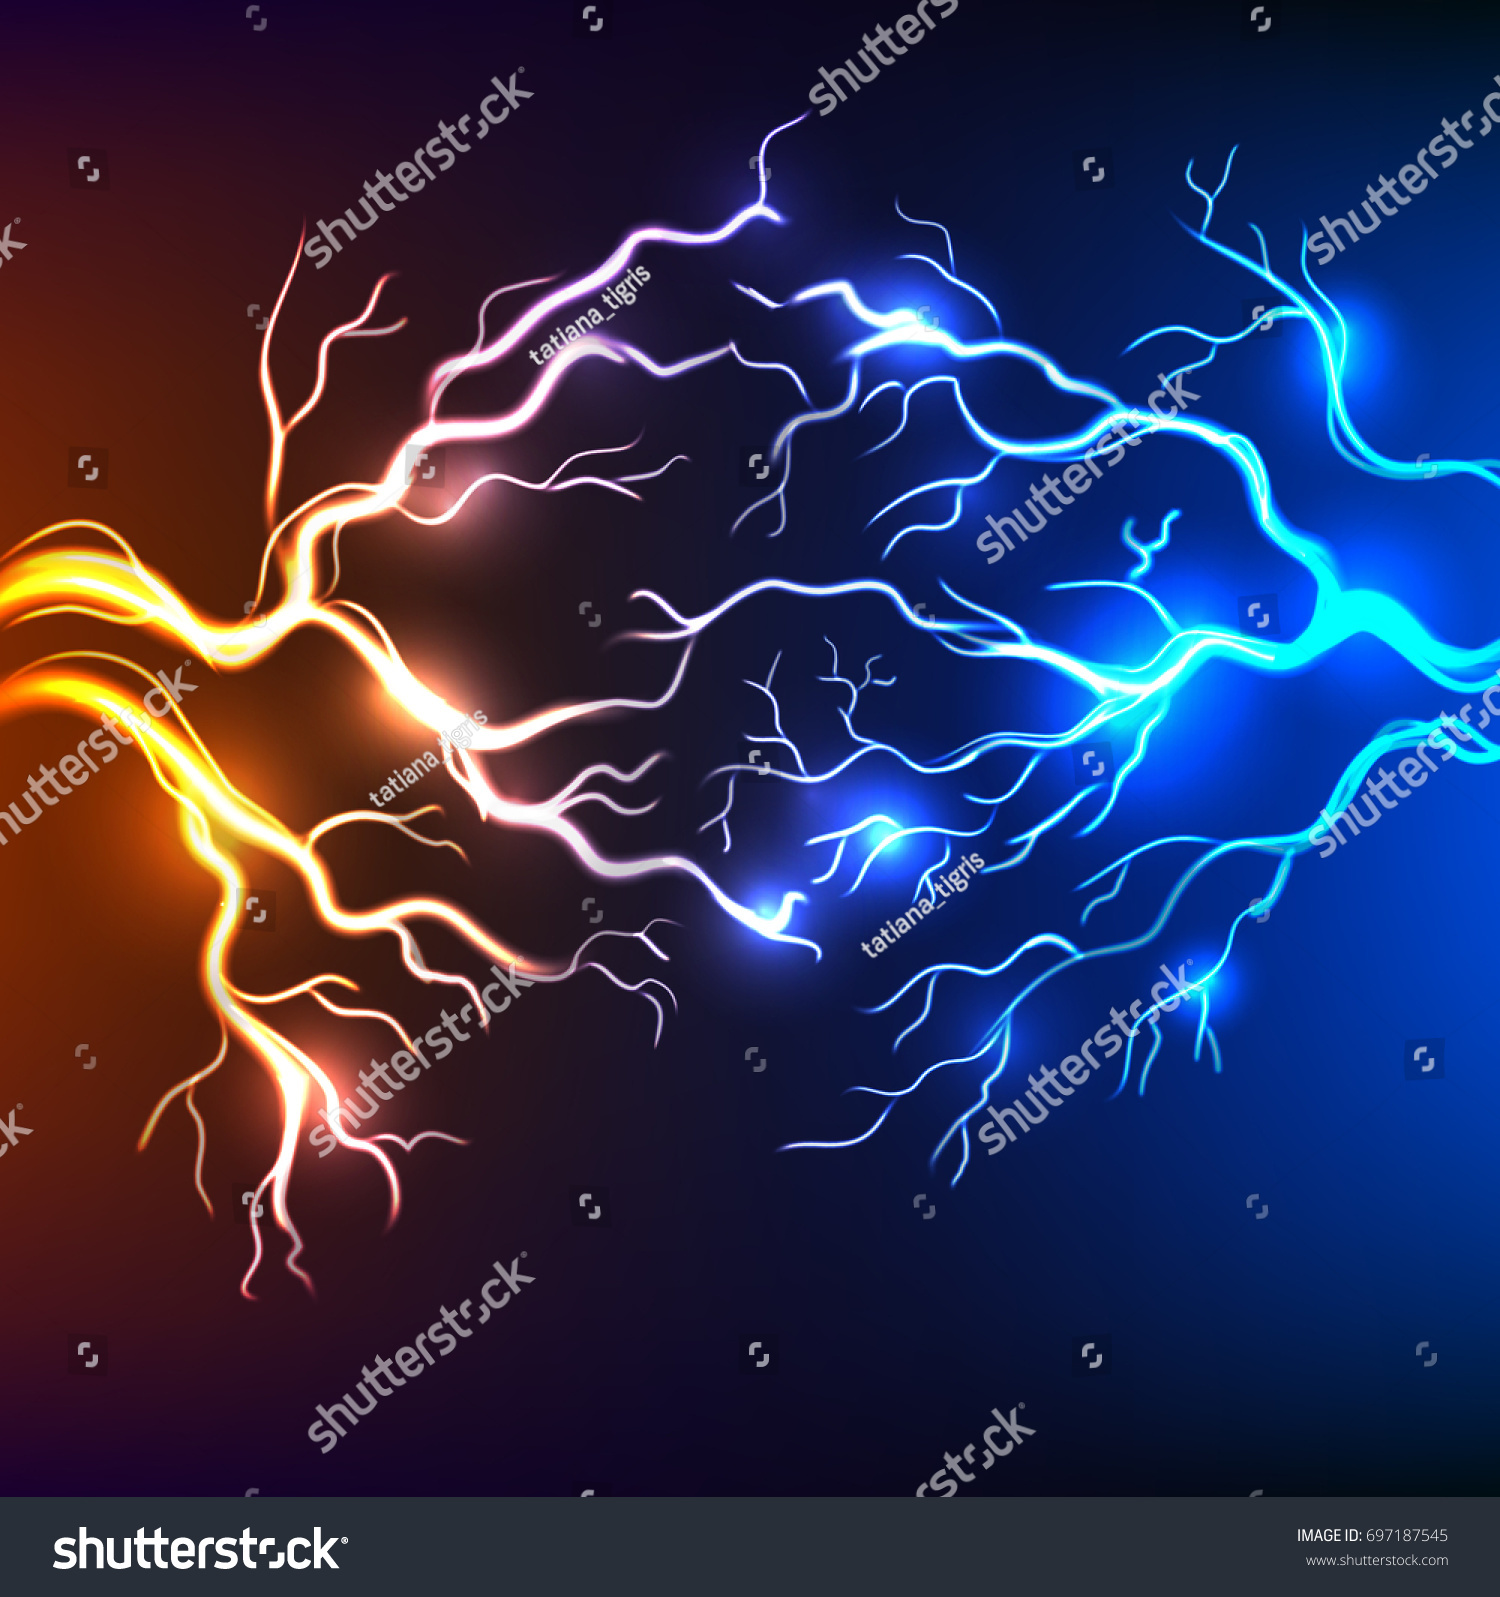 Electric Effect Connected Lightning Bolts Background Stock Vector ... for Electricity Lightning Bolt  45hul